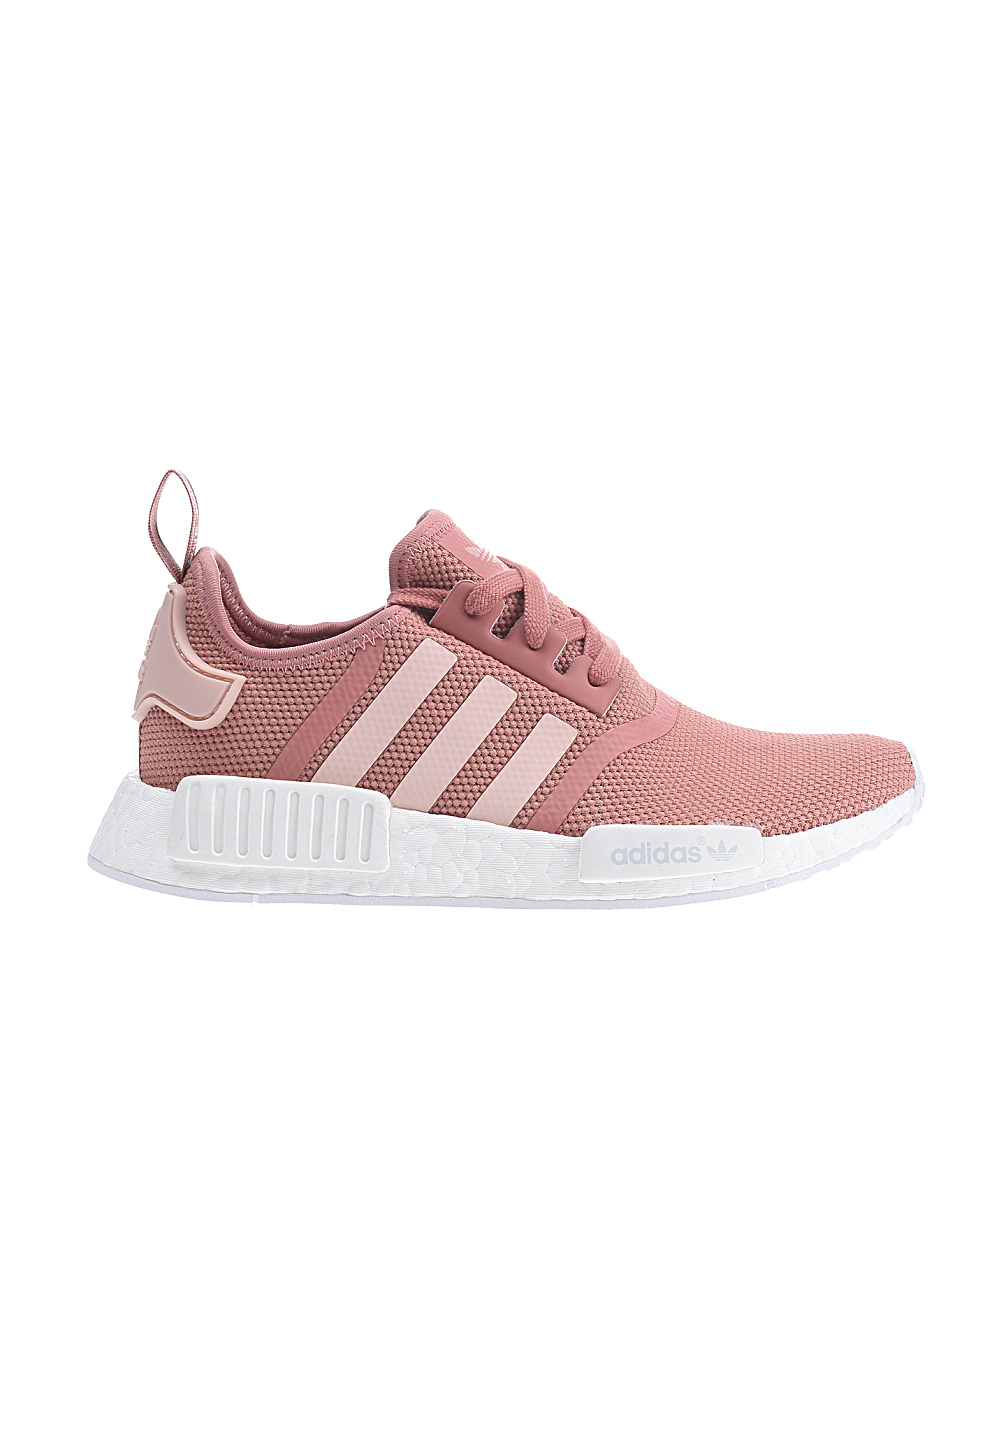 adidas nmd r1 zapatillas para mujeres rosa planet sports. Black Bedroom Furniture Sets. Home Design Ideas